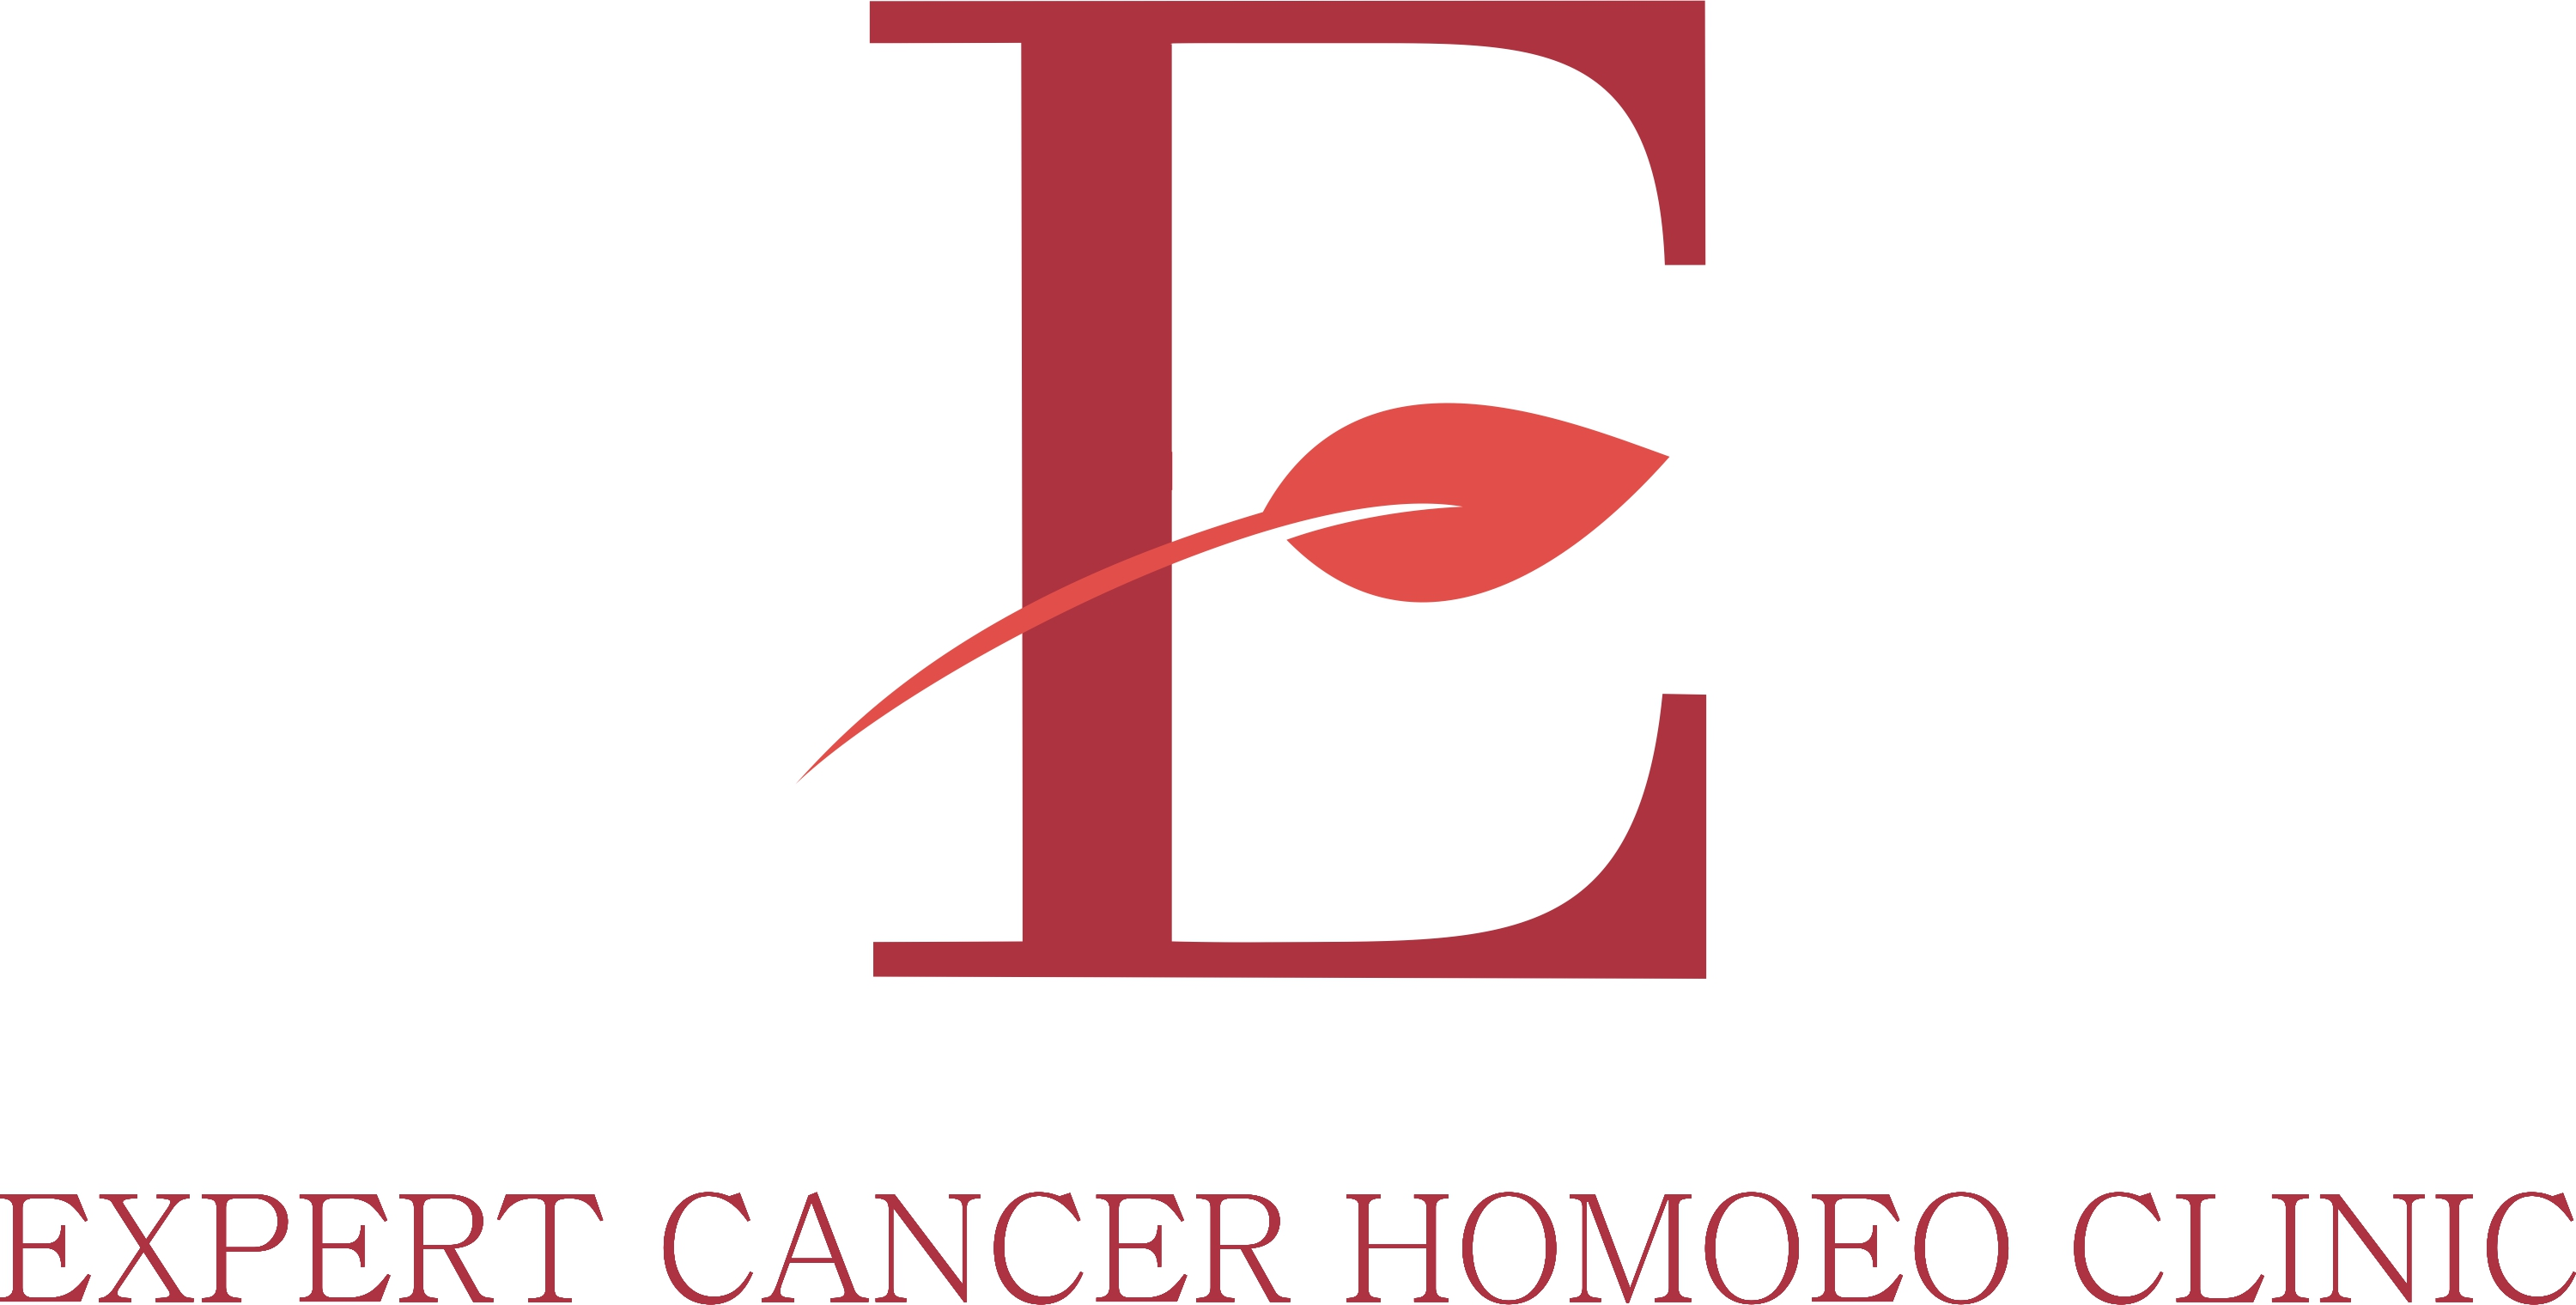 Expert Cancer Homoeo Clinic